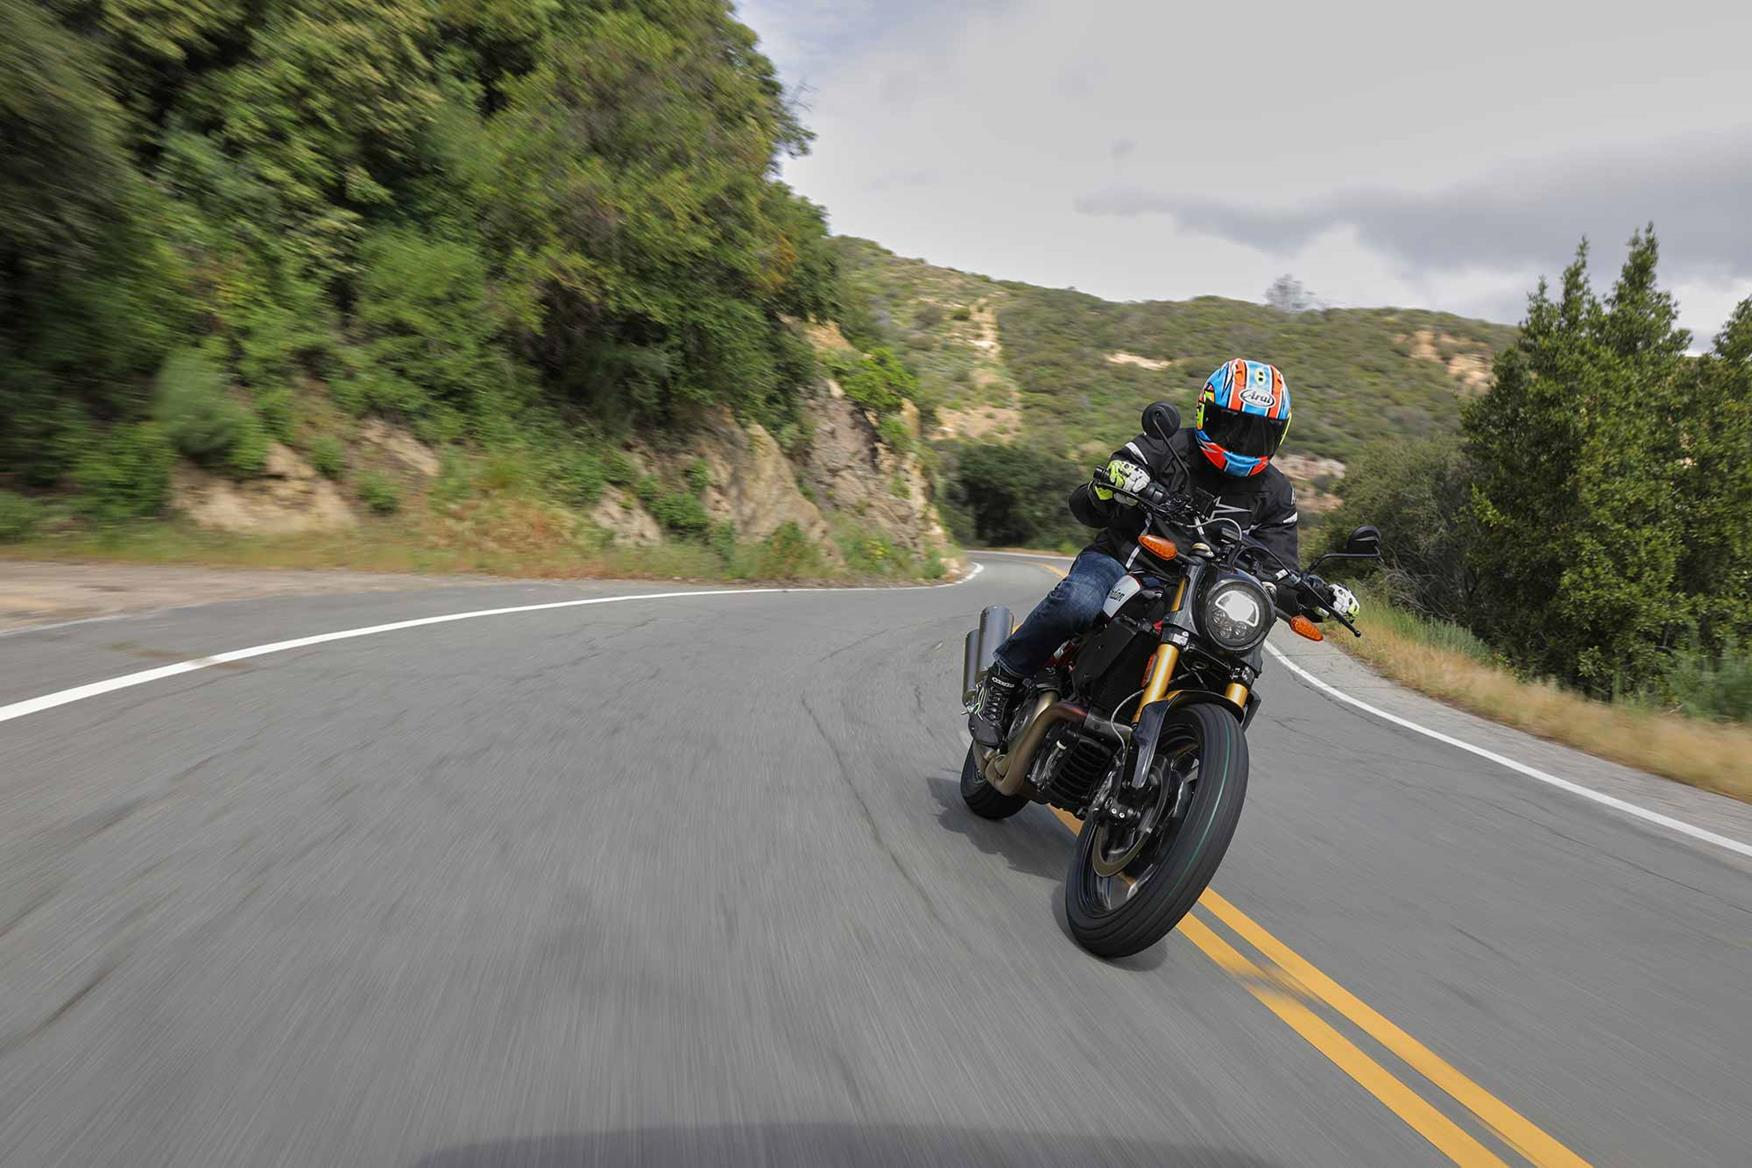 Riding the Indian FTR 1200 S